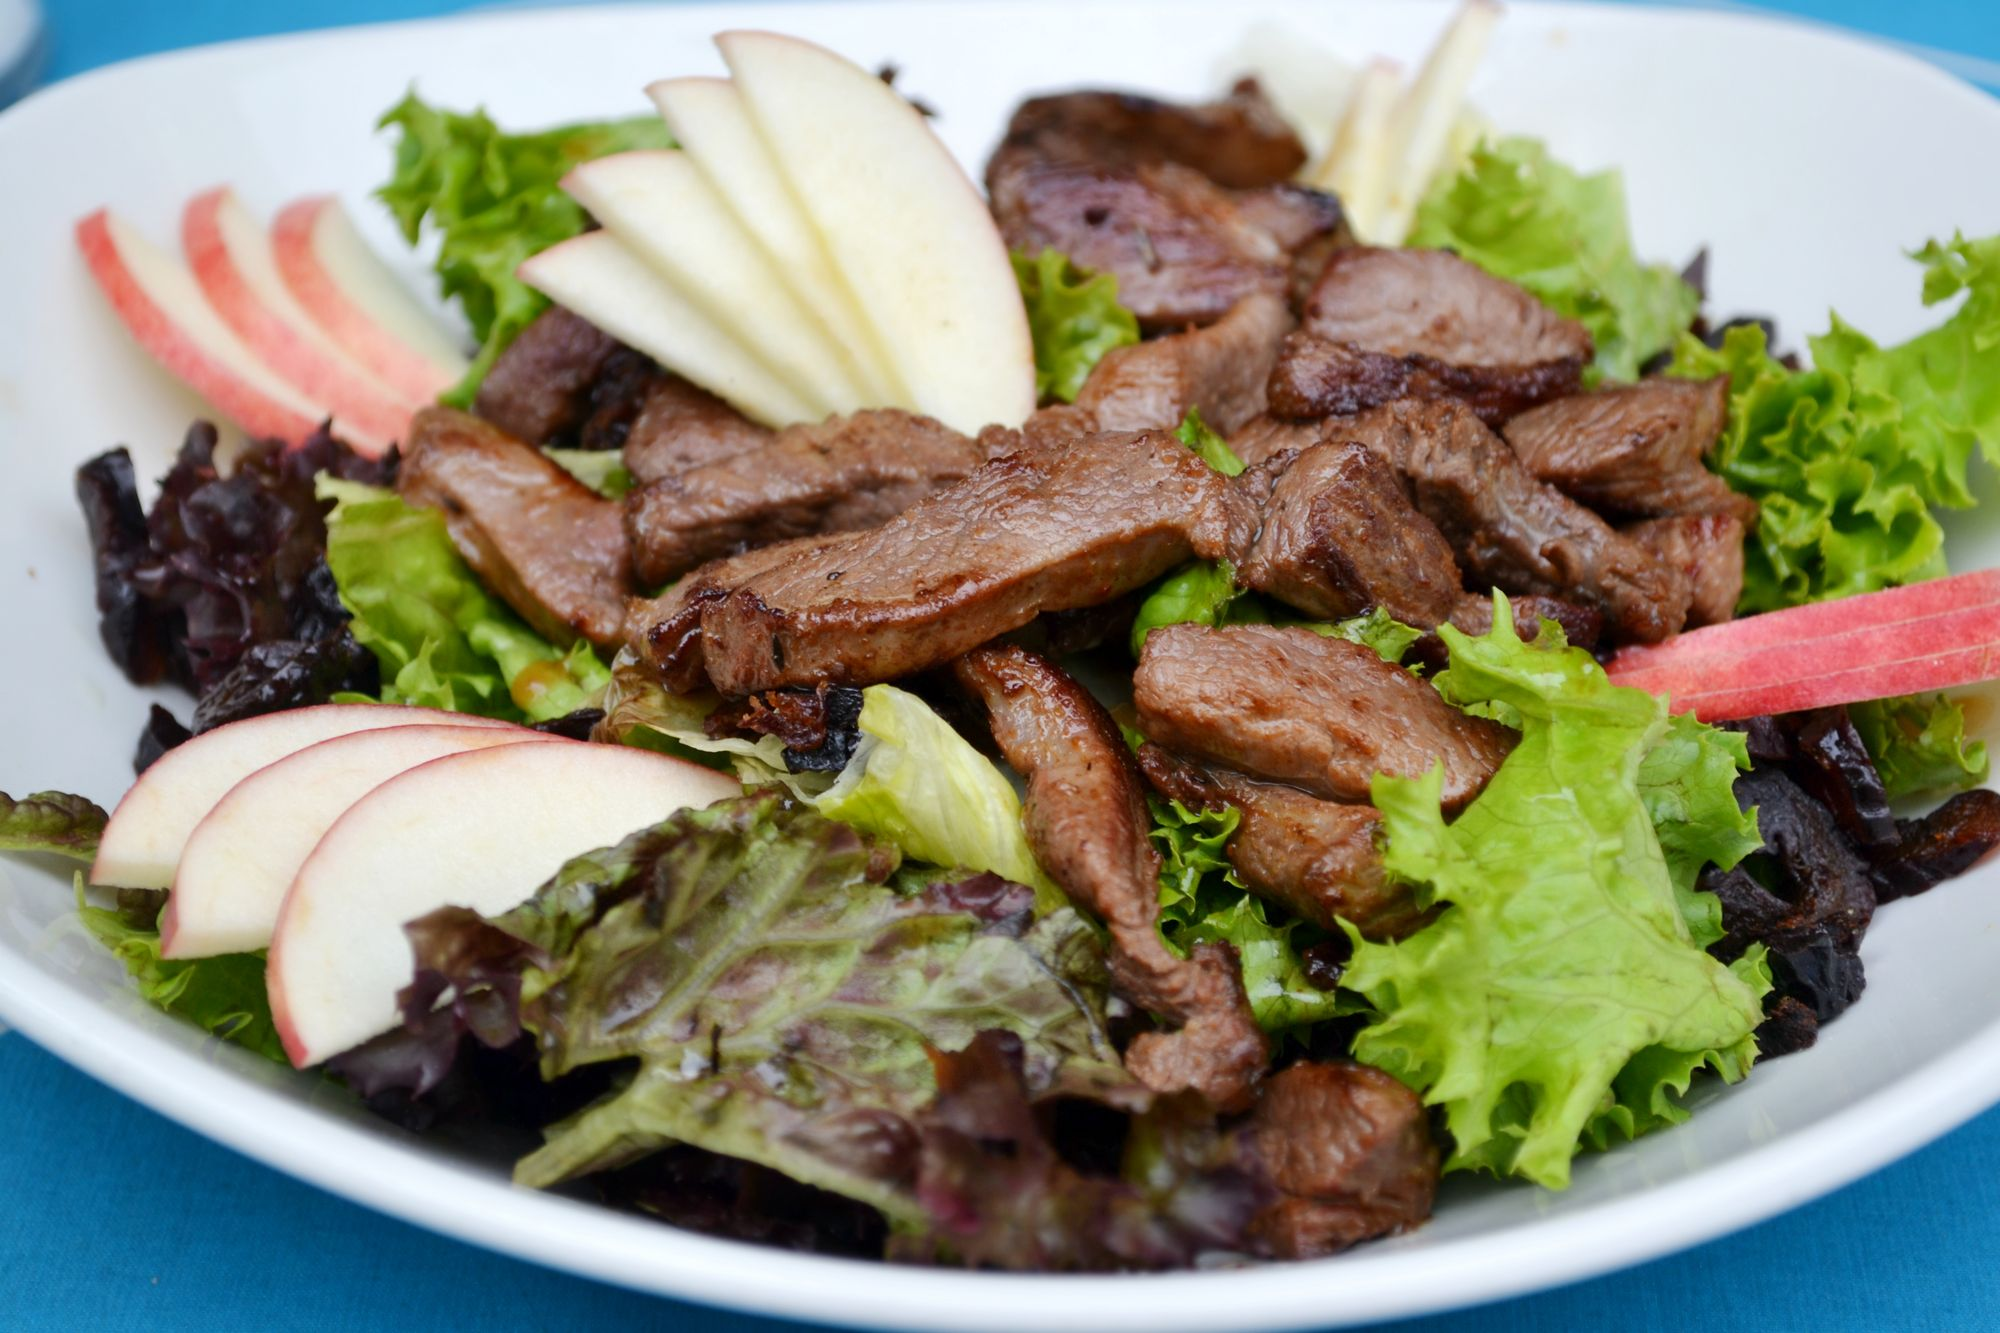 Griddled Pork and Apple Salad